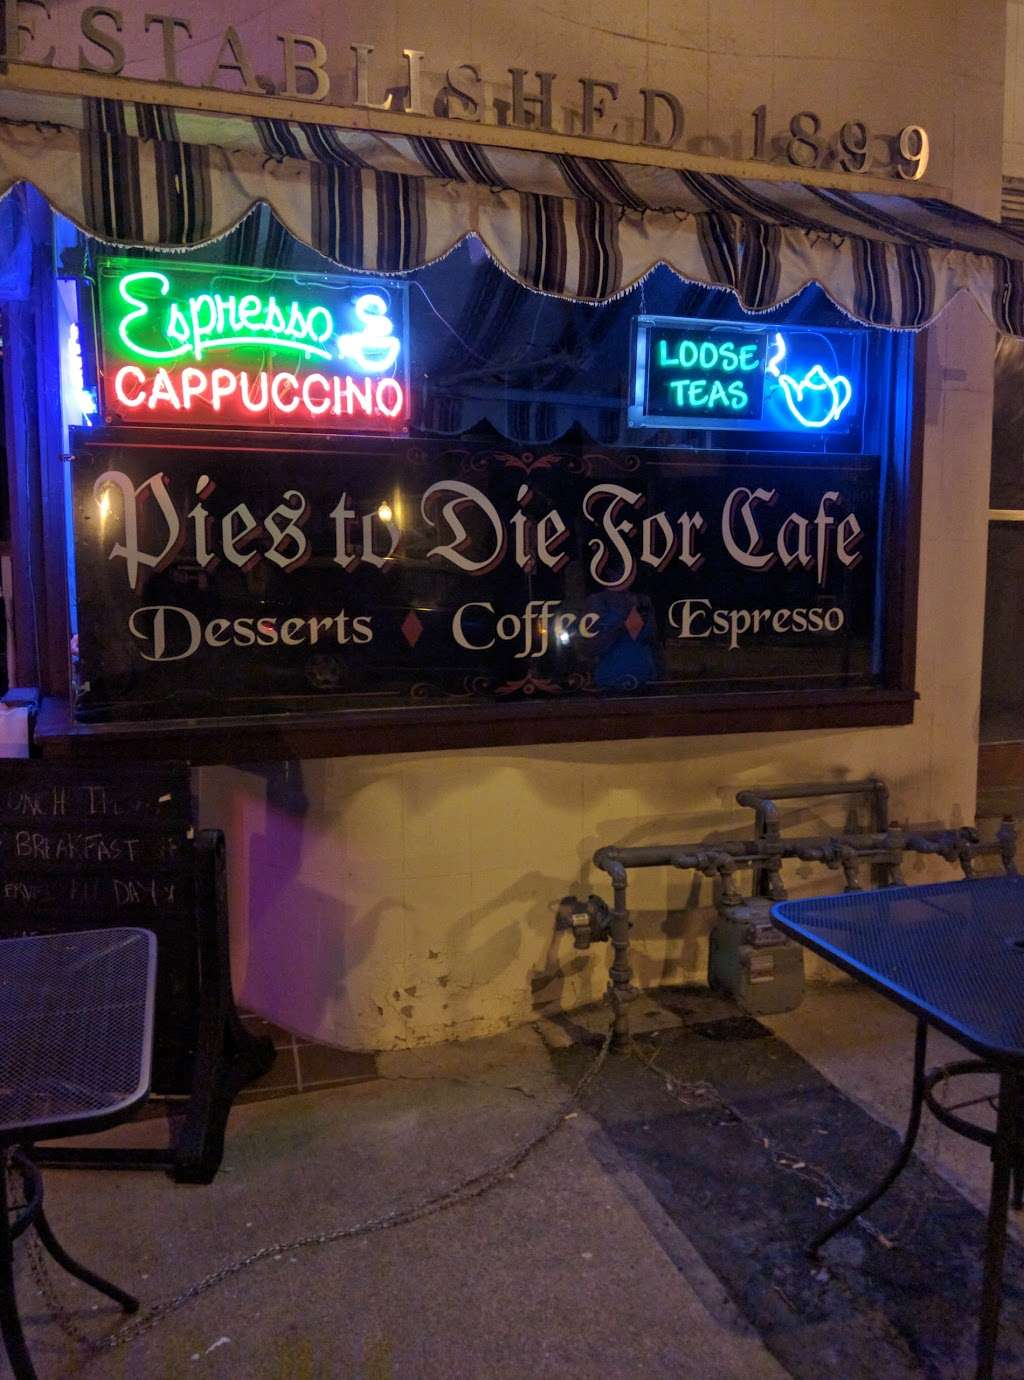 Pies To Die For Cafe - cafe  | Photo 3 of 10 | Address: 5 Broadway, Bangor, PA 18013, USA | Phone: (610) 340-4756